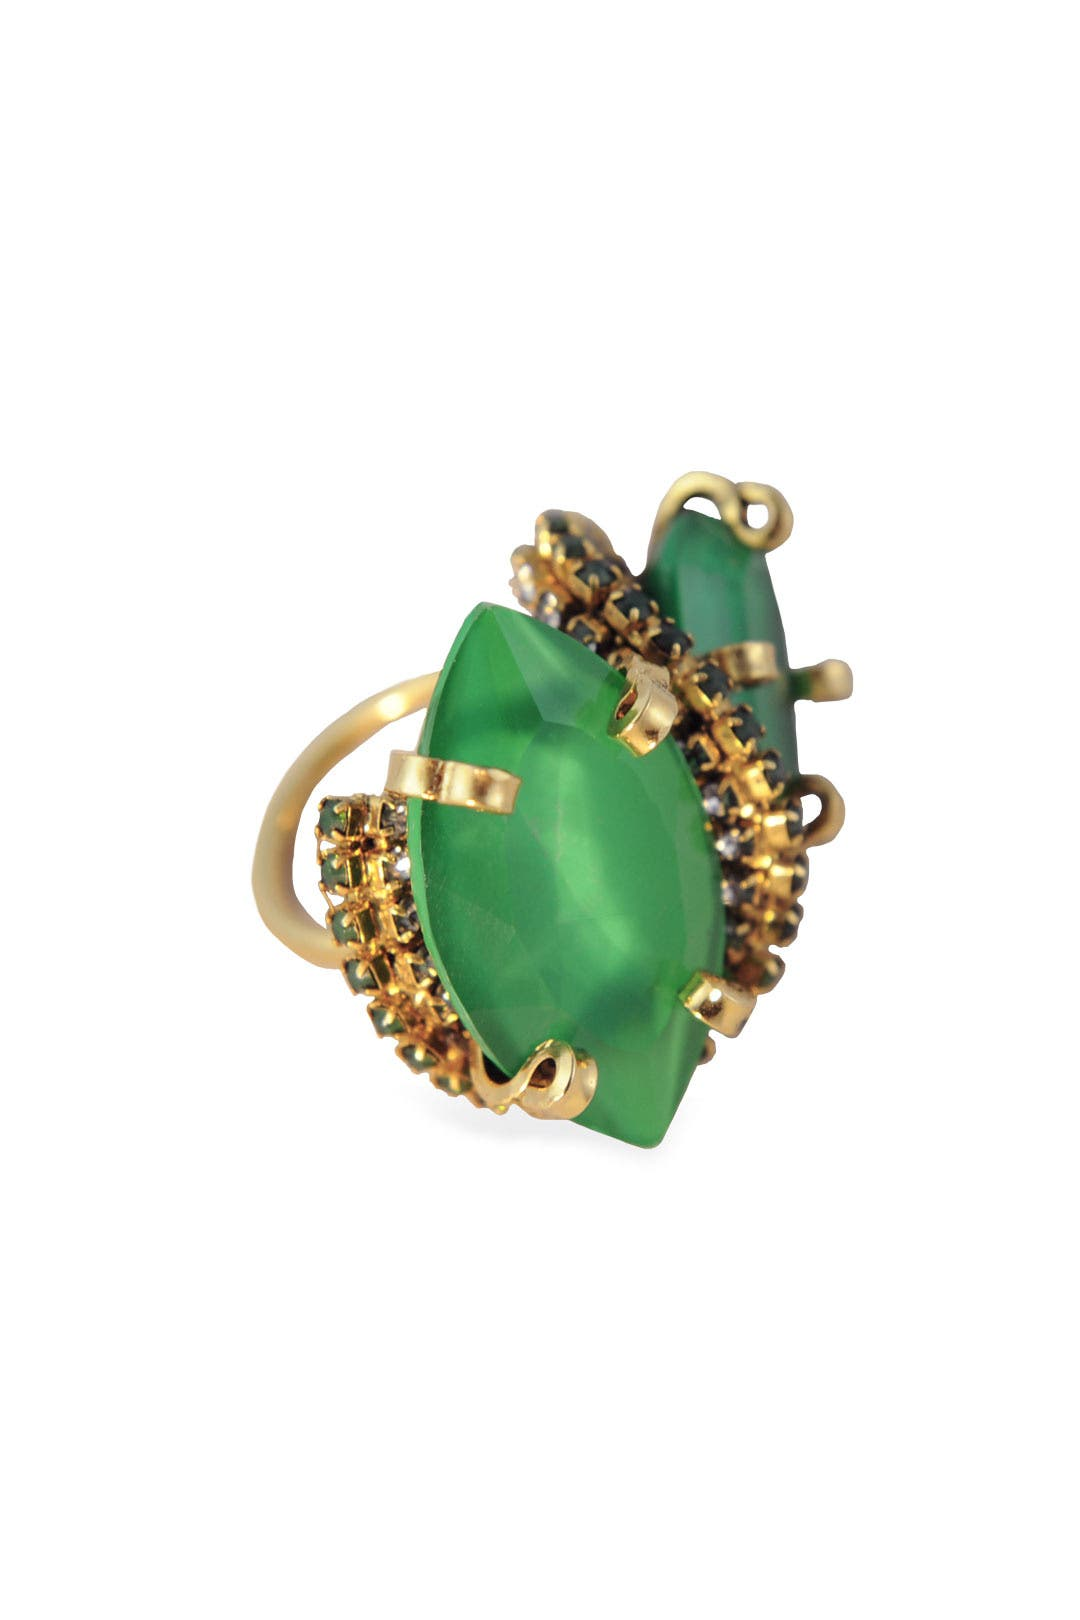 Bette Davis Eyes Emerald Ring by Erickson Beamon